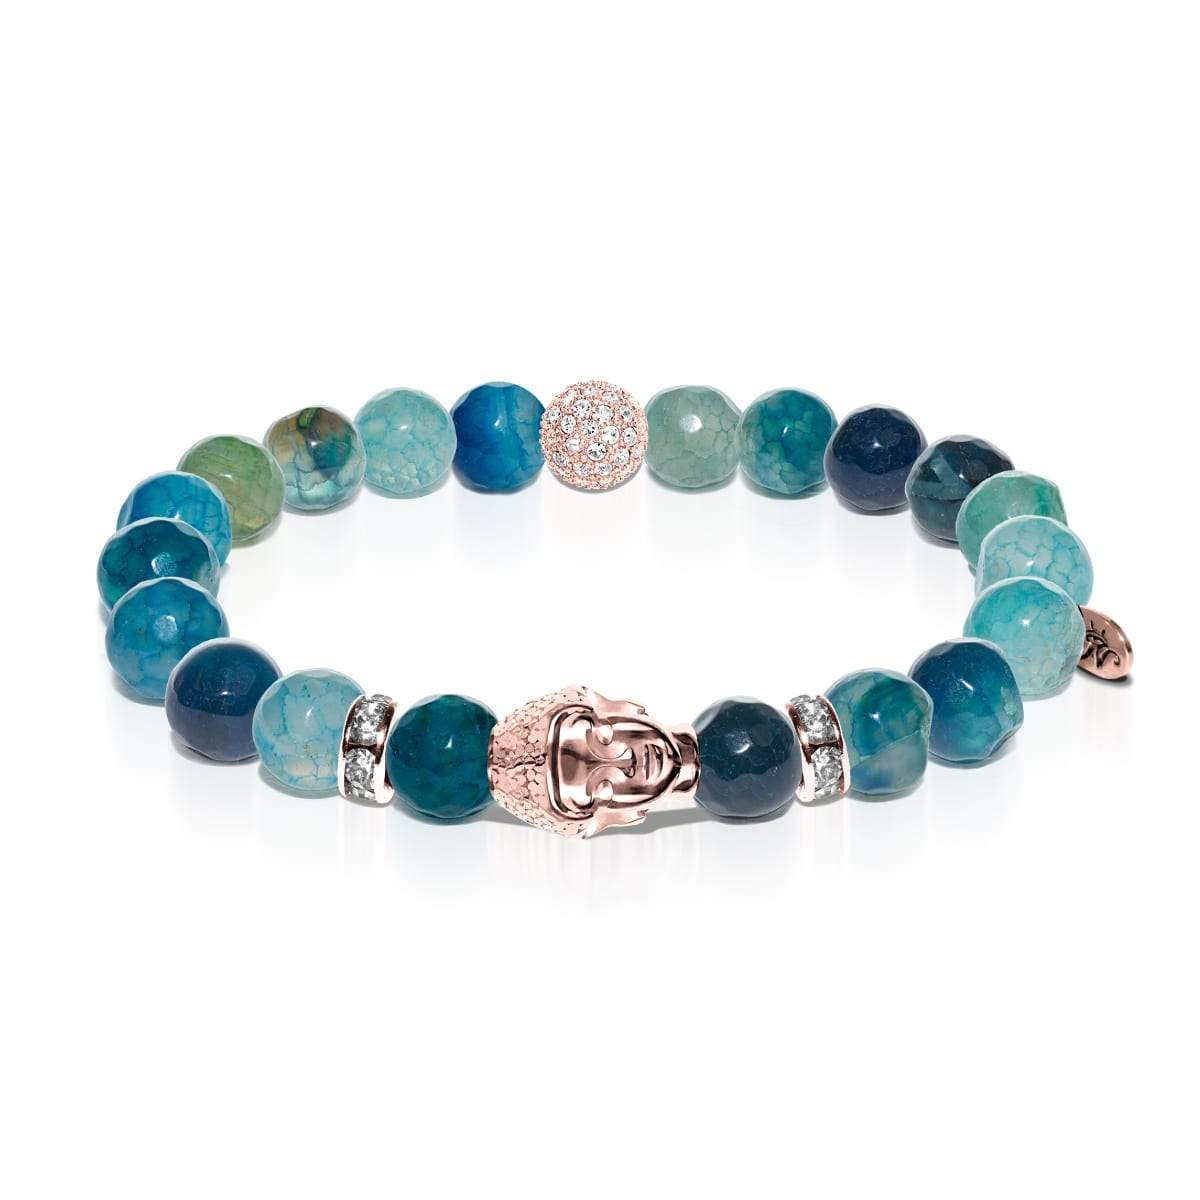 Lotus tibétain | Bouddha en or rose | Bracelet agate grain de dragon vert